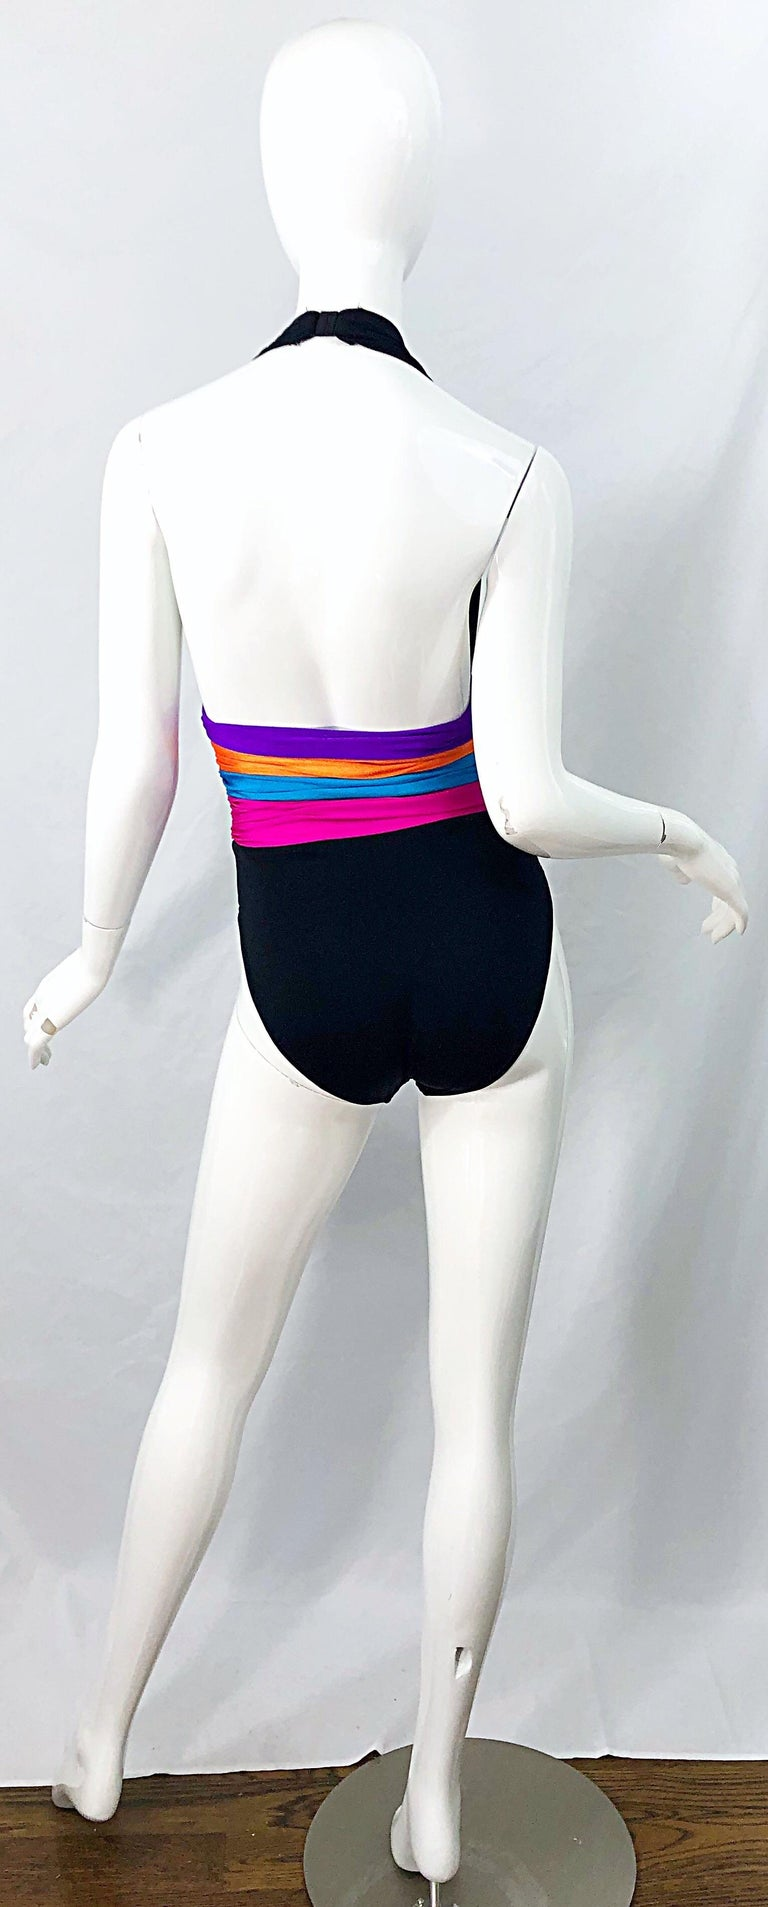 1980s Yves Saint Laurent Size 8 Plunging Halter One Piece 80s Bodysuit Swimsuit For Sale 7